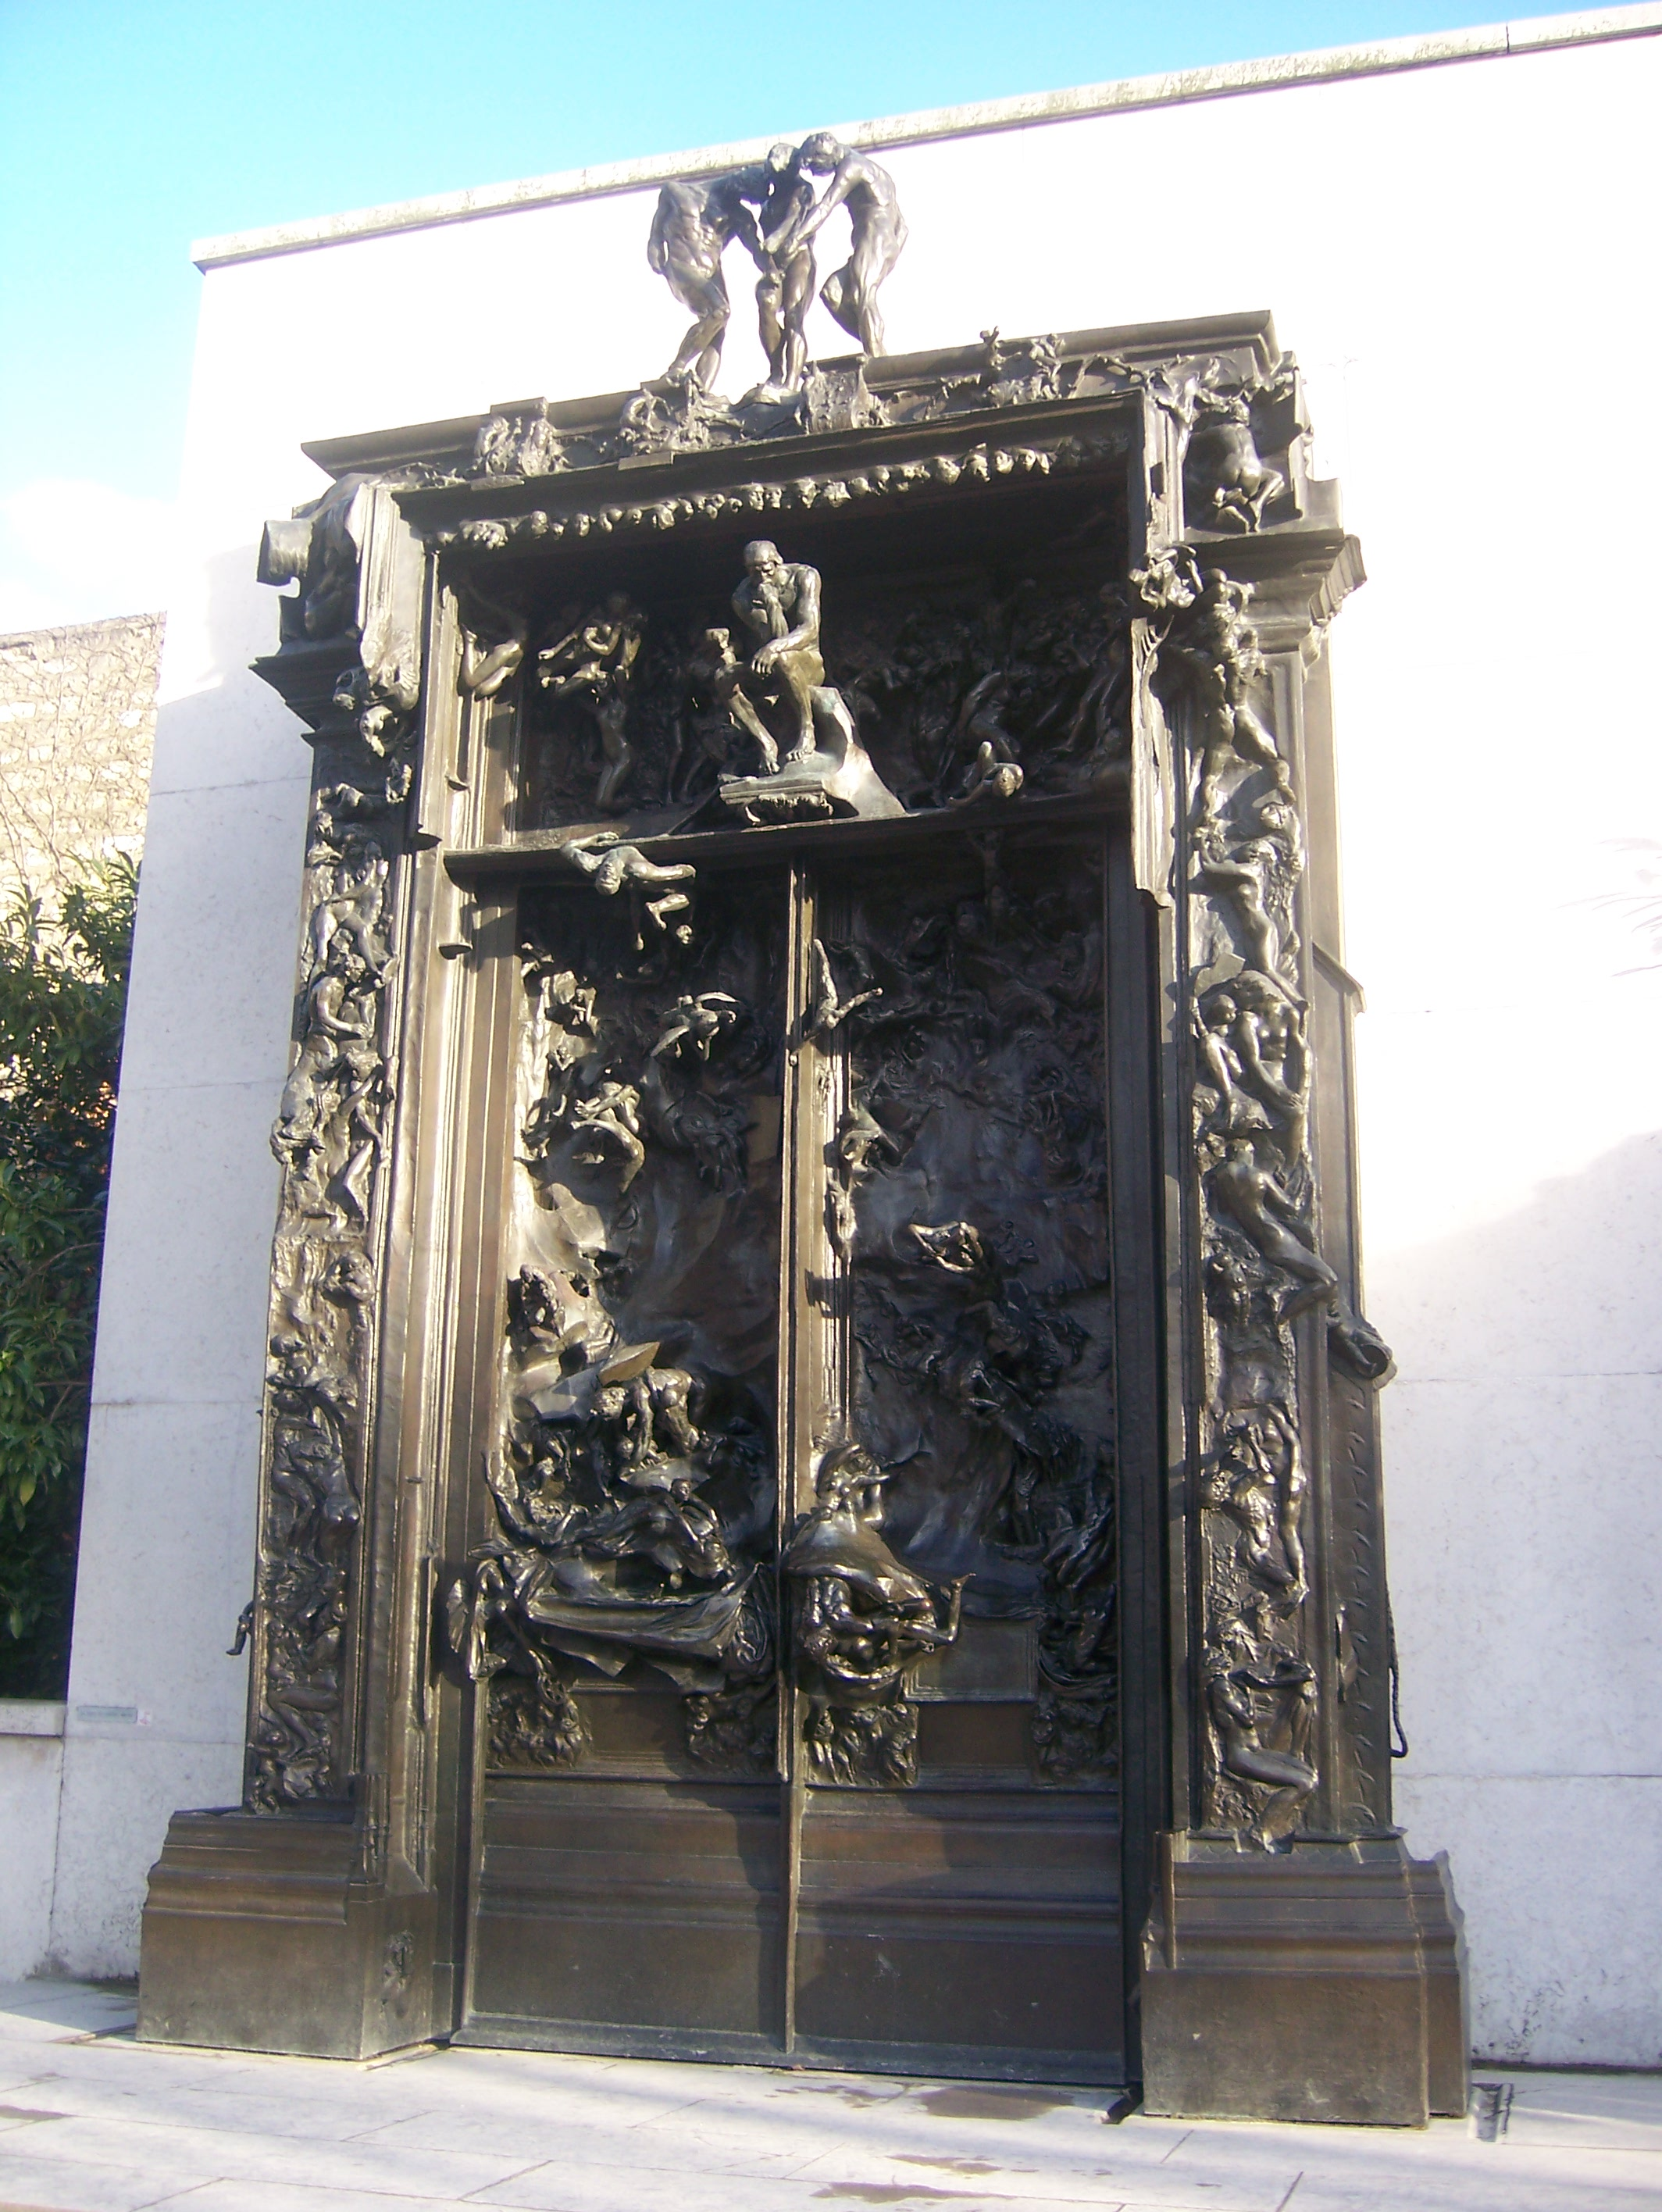 This artwork can be viewed at the following website: Rodin, The Gates of Hell